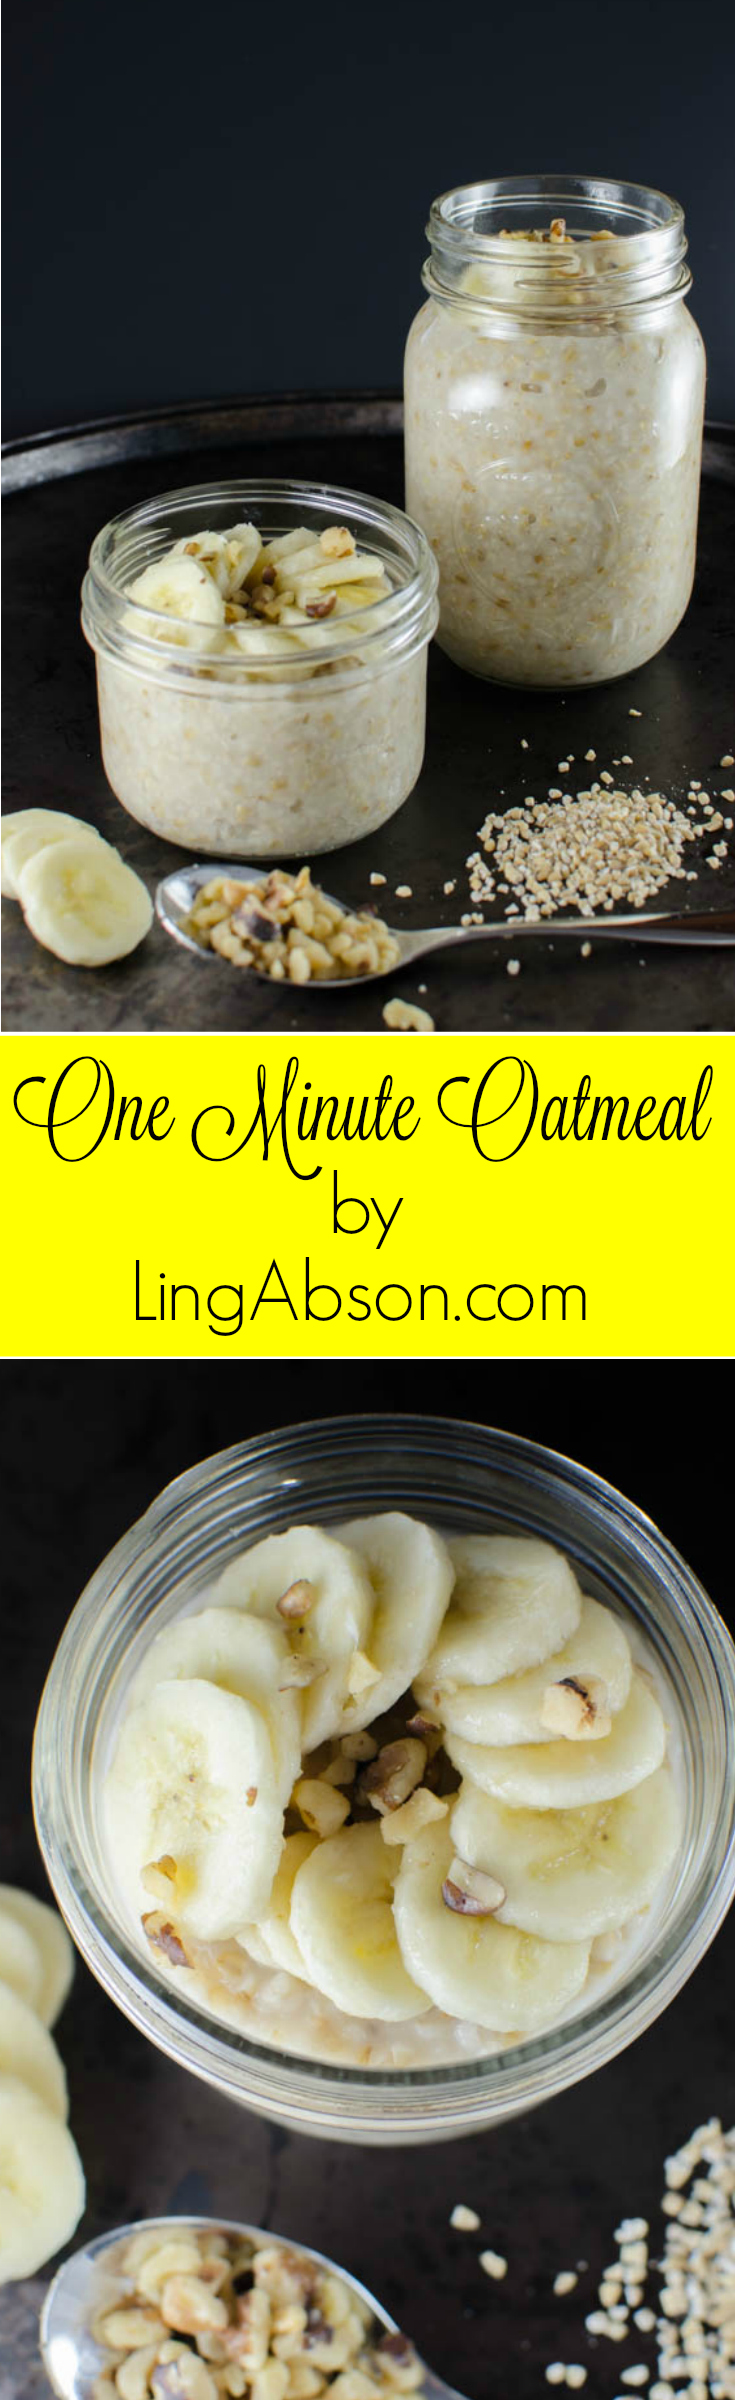 Two Minute Oatmeal That Lasts For a Week by Ling Abson